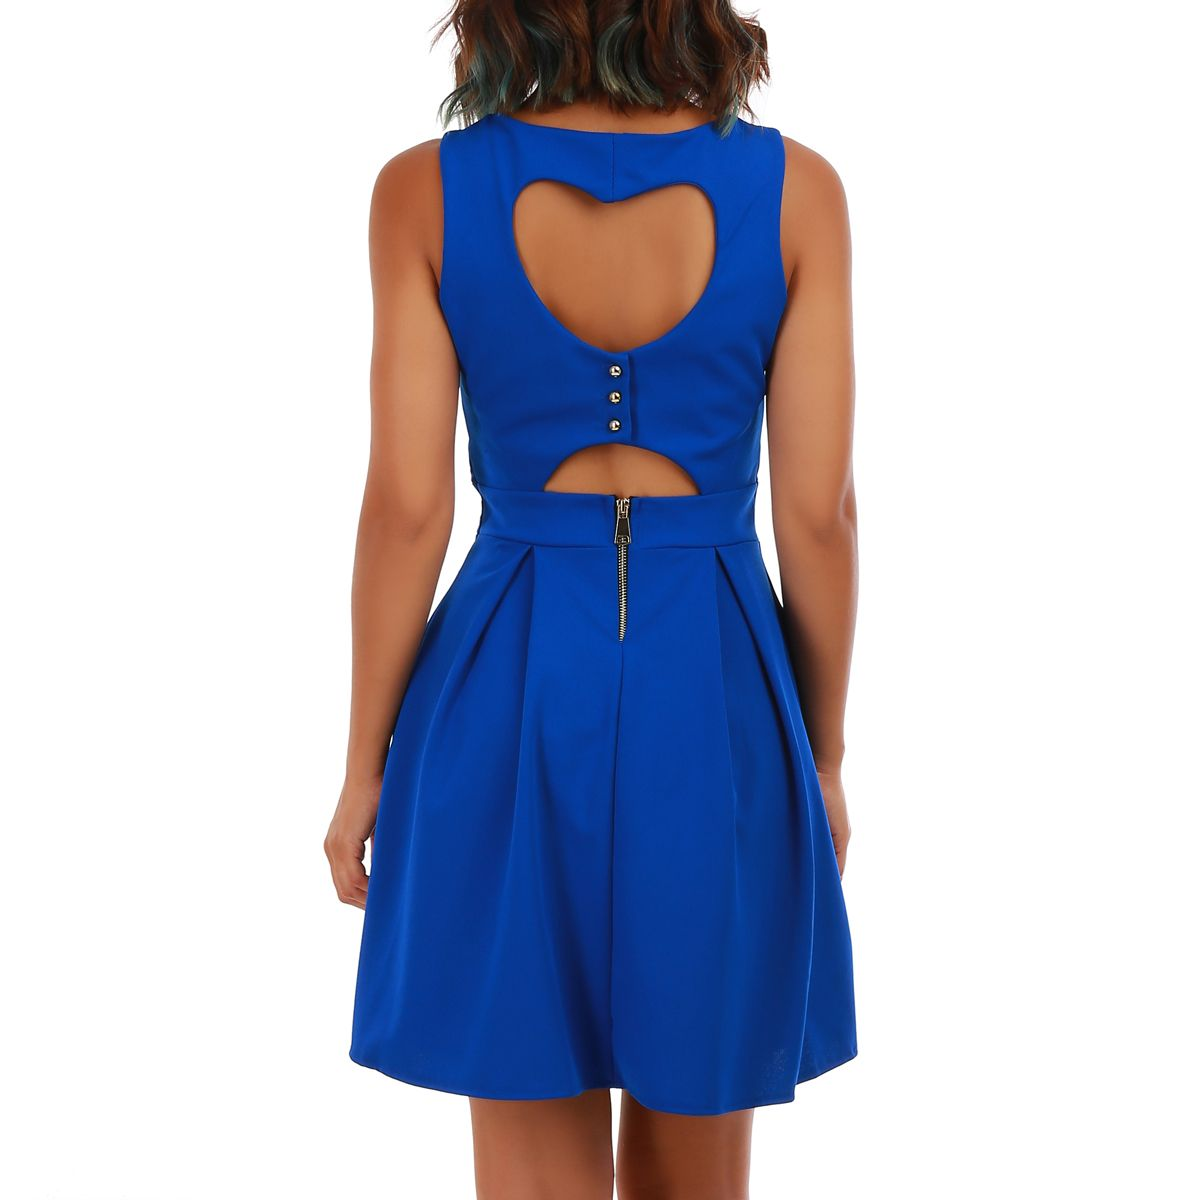 Robe coeur patineuse bleue